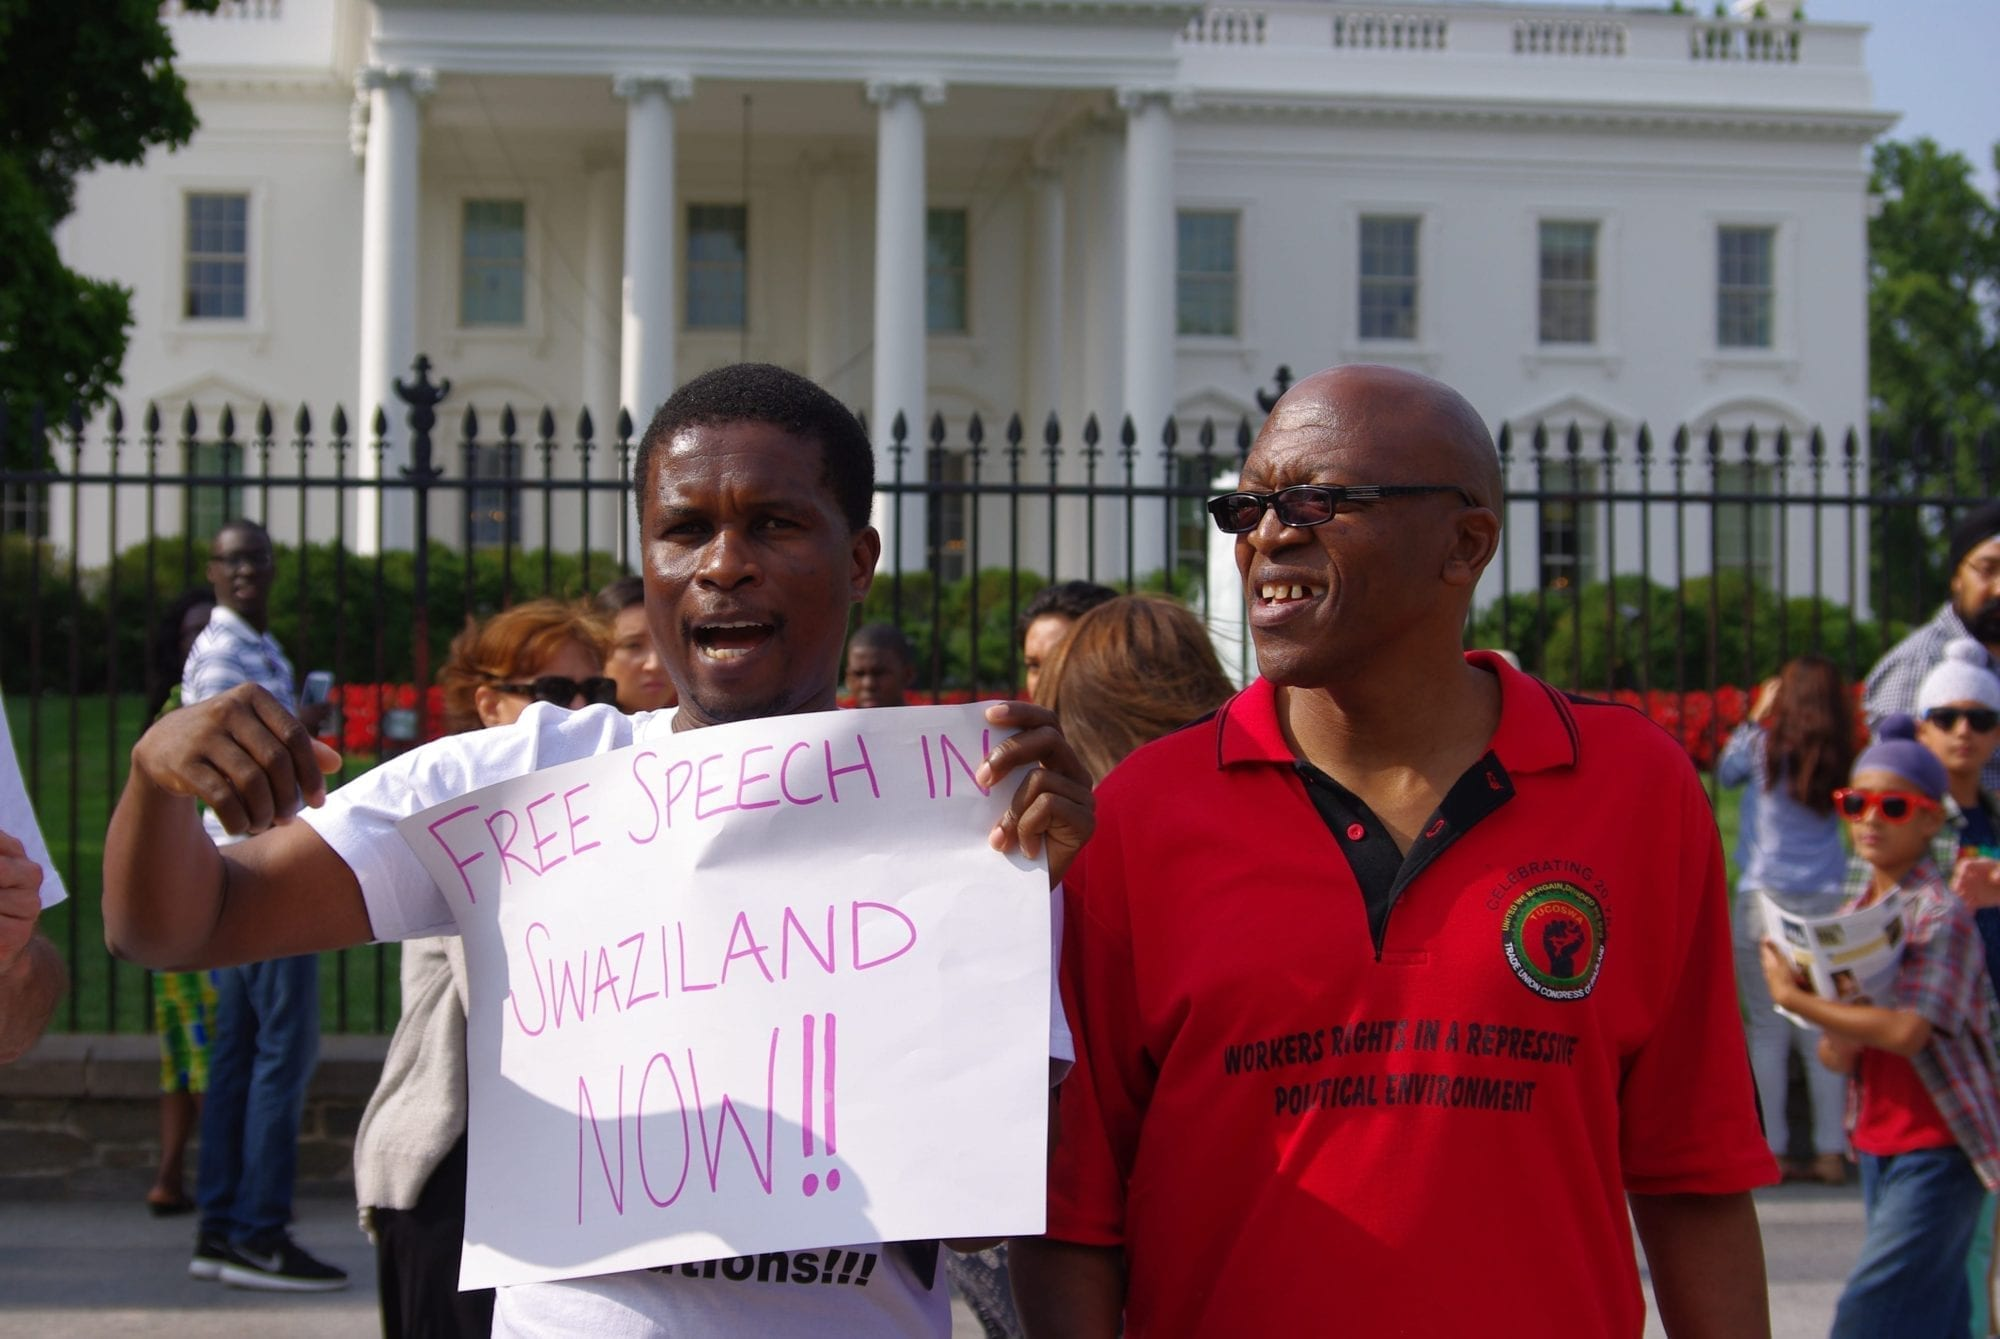 Fearing Police Action, Swaziland Workers Cancel Rally